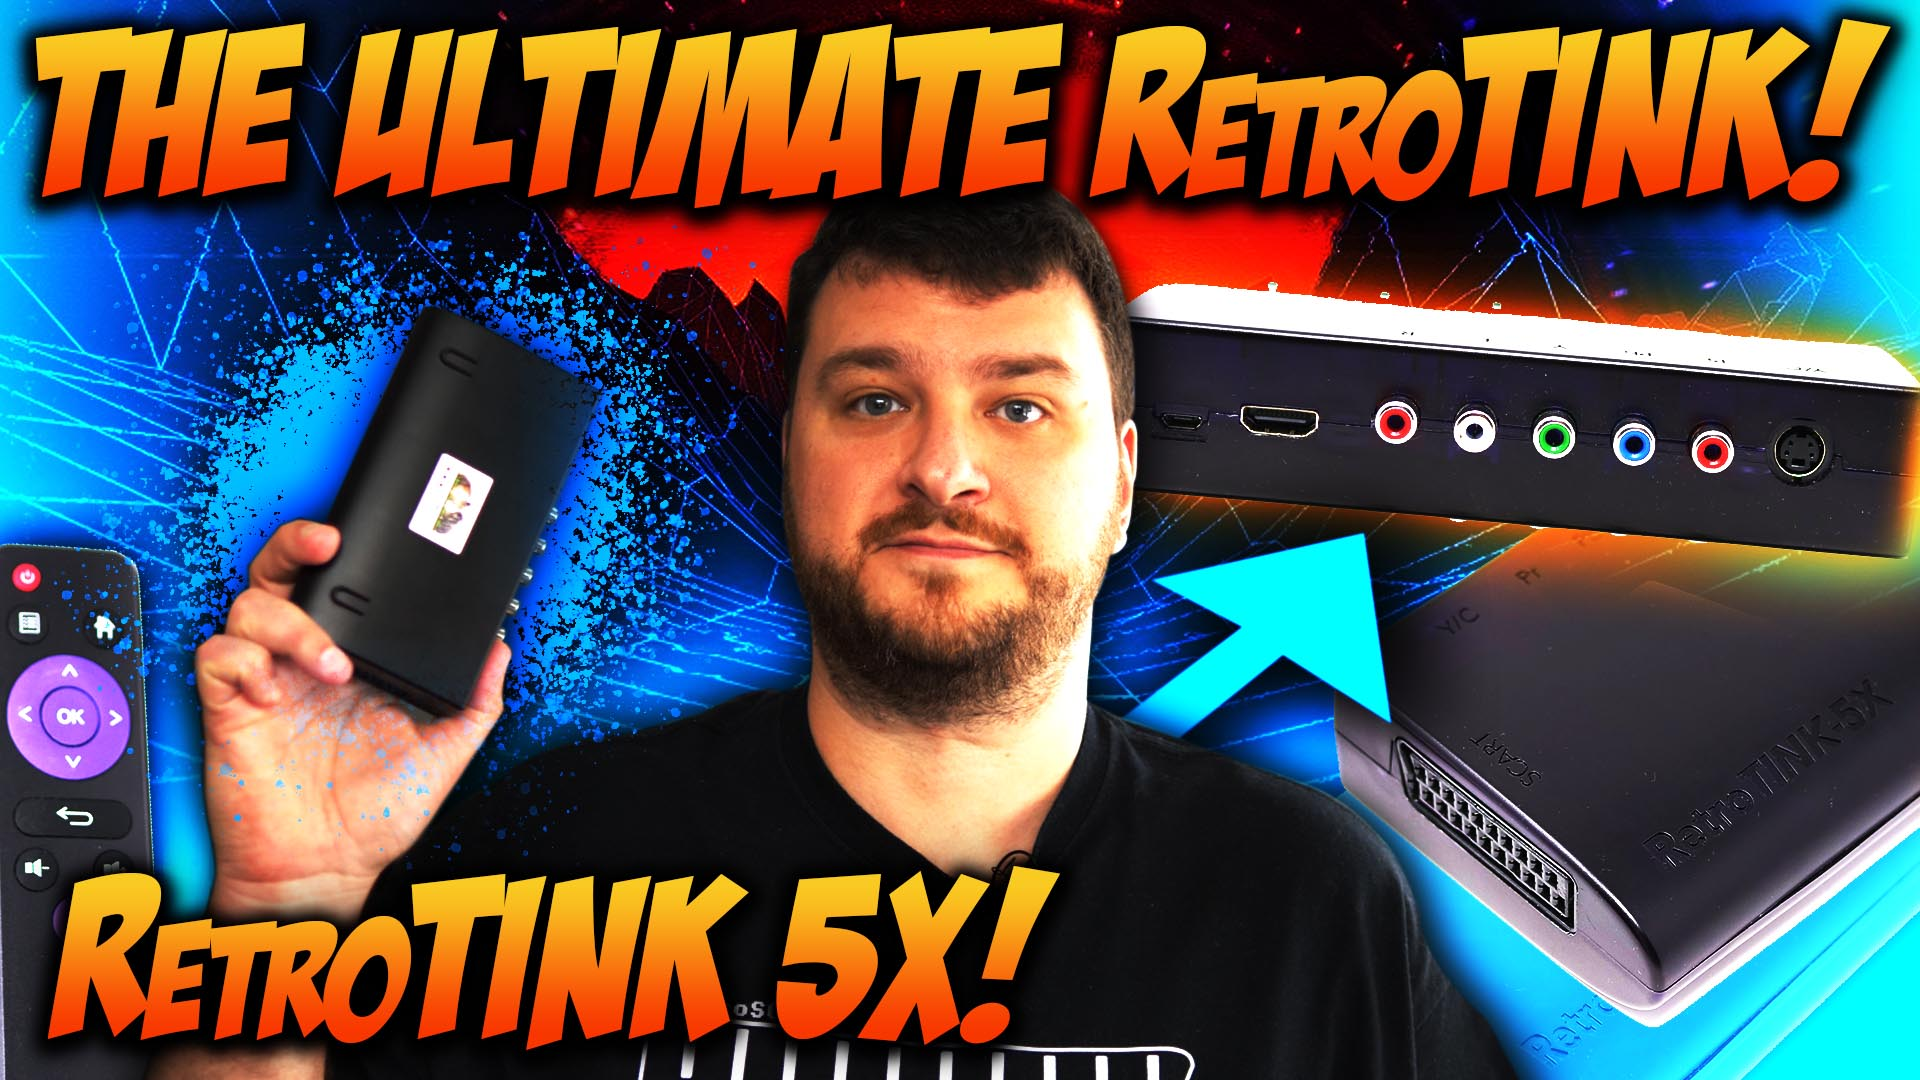 The RetroTINK 5x Has Arrived!